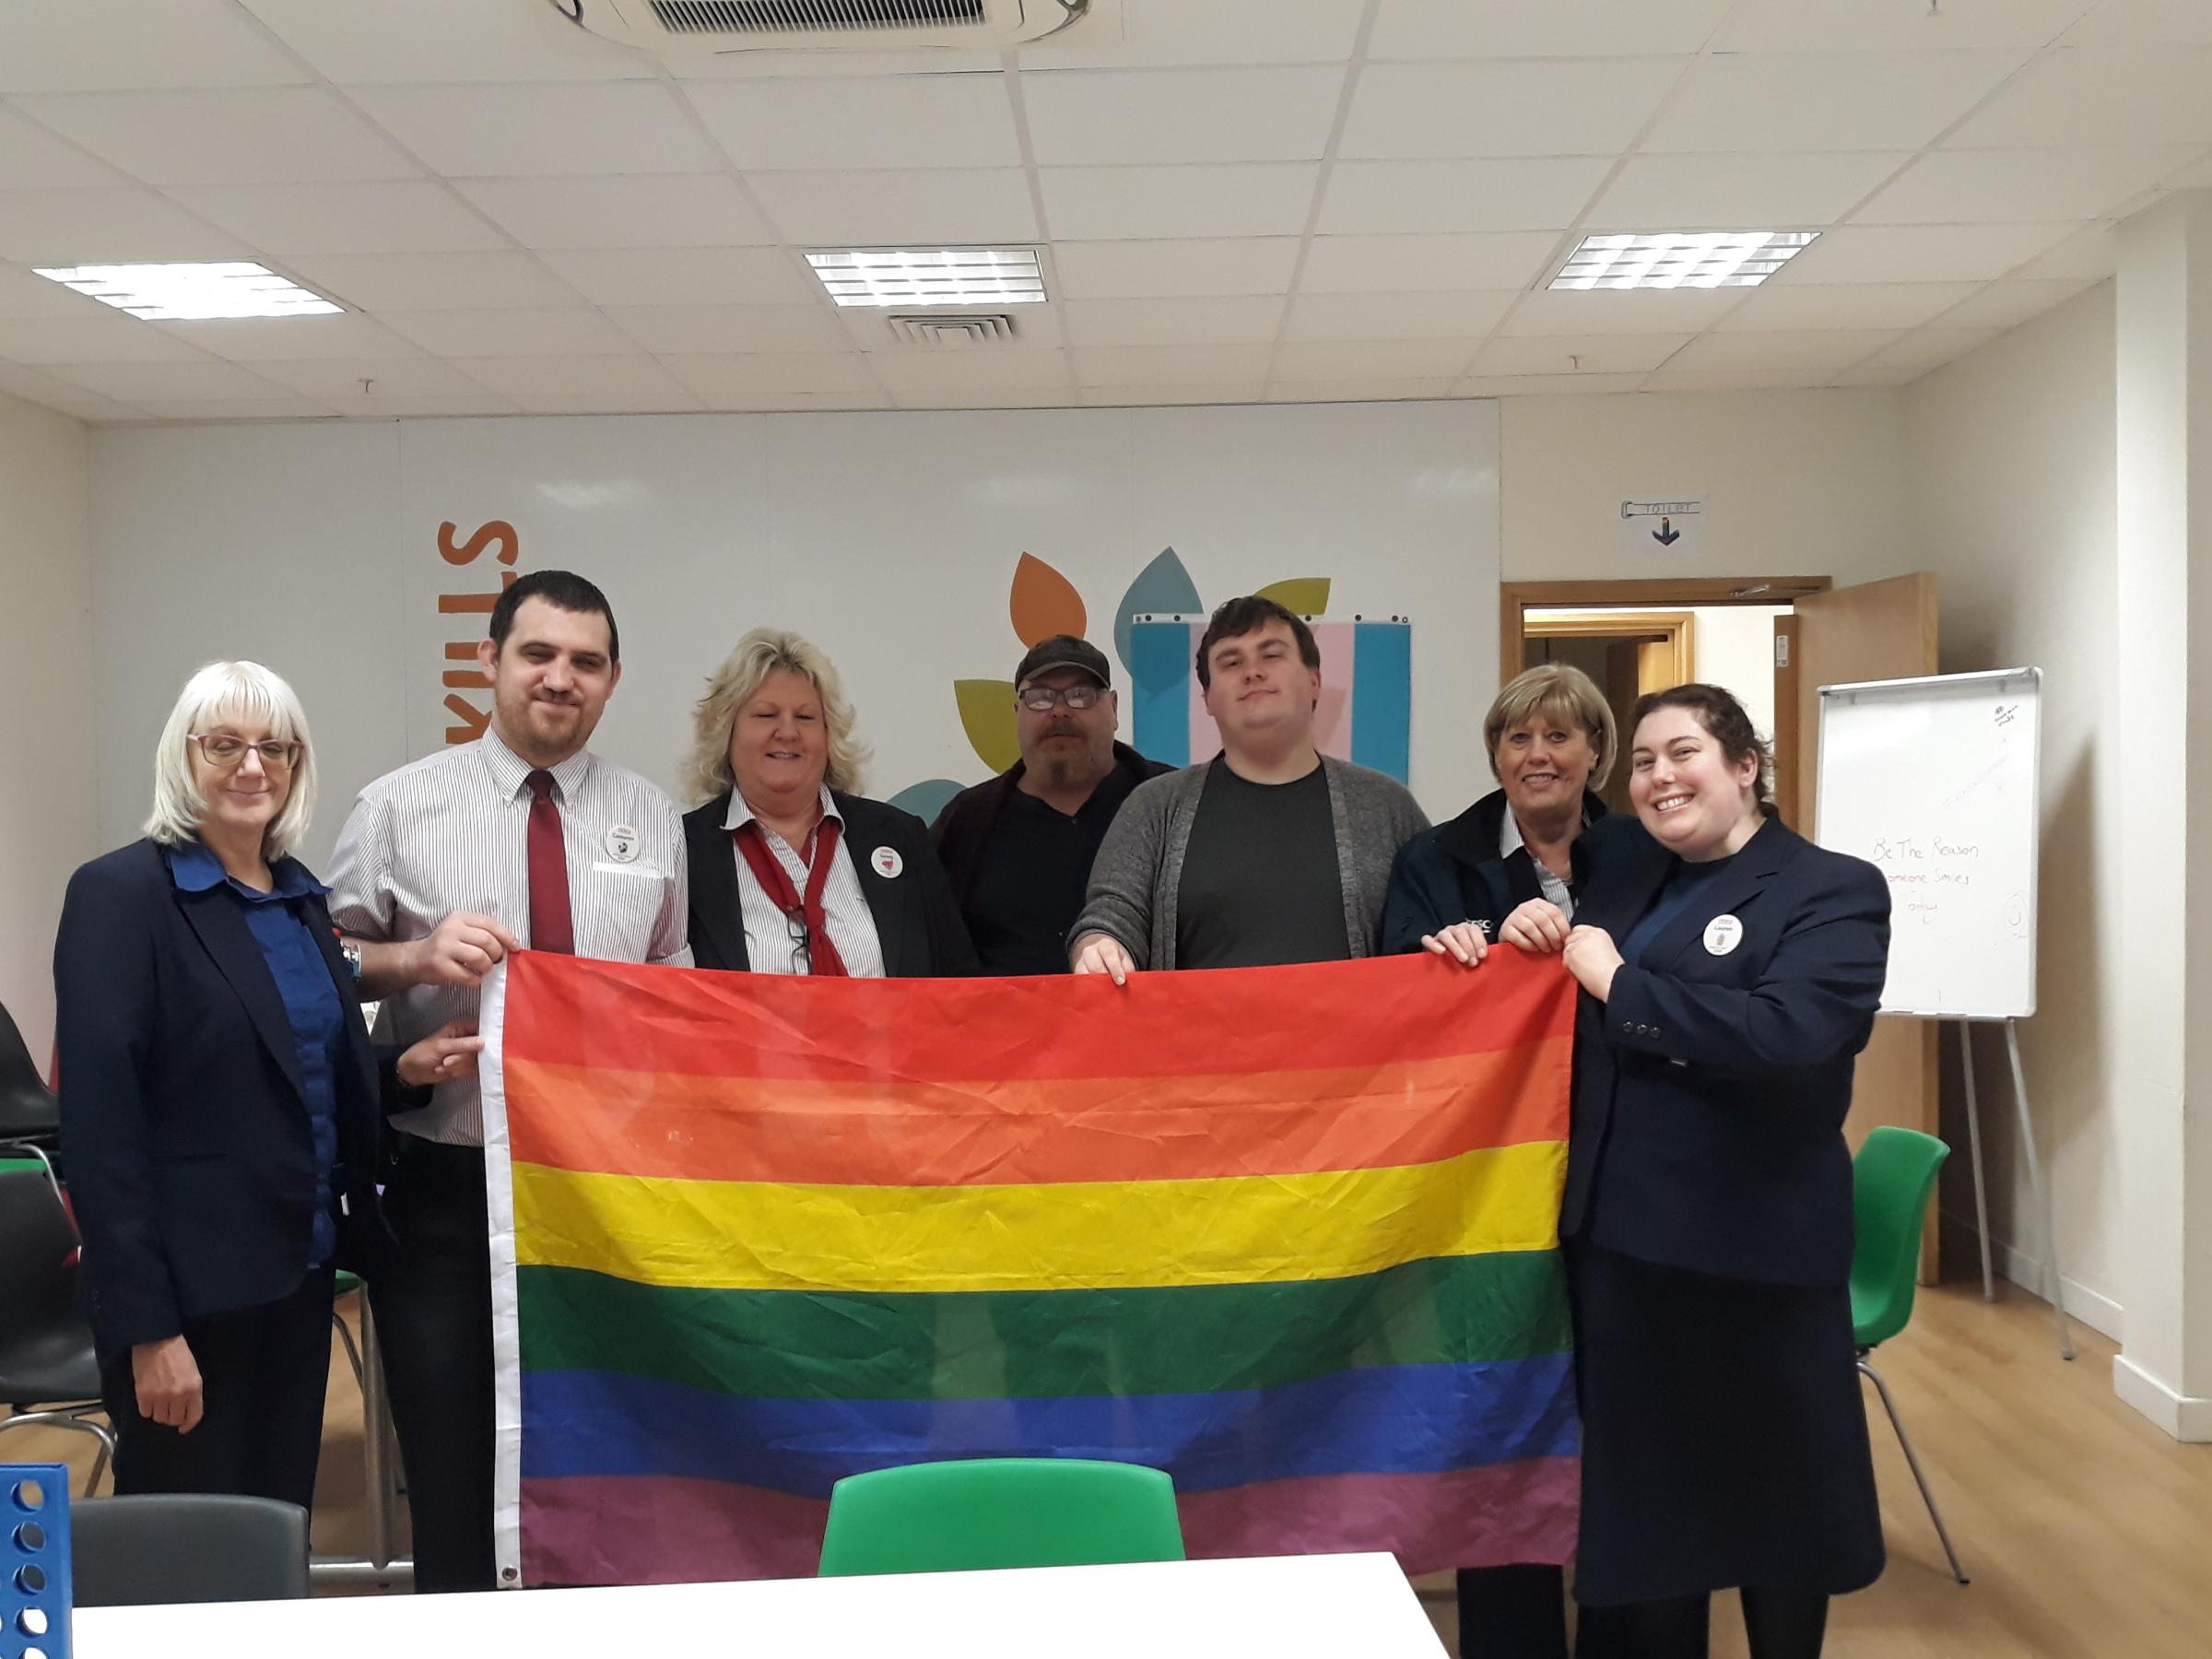 Trowbridge pride group celebrated LGBT history month with a community session in Tesco.